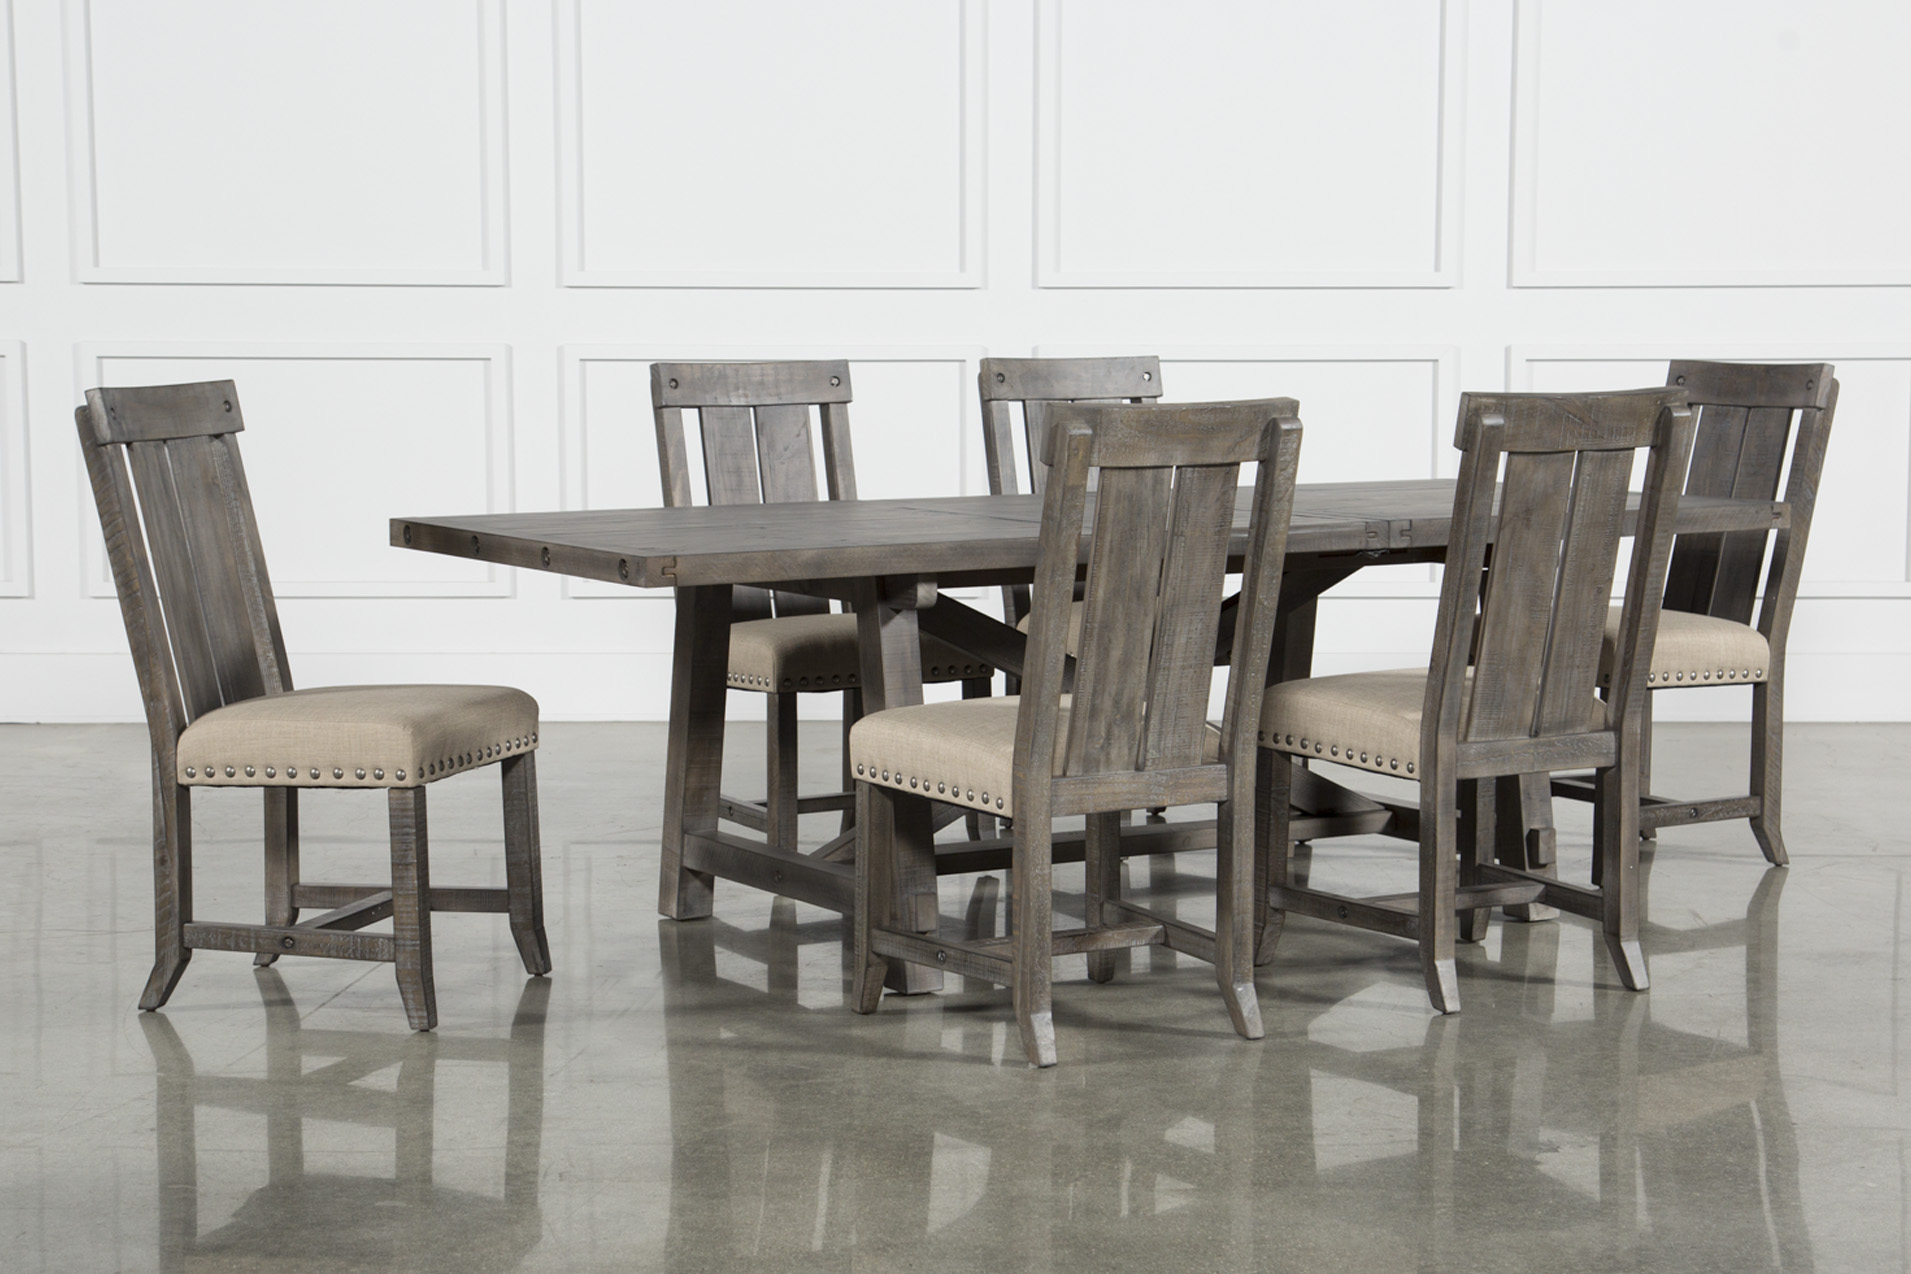 Jaxon Grey 7 Piece Rectangle Extension Dining Set W/Wood Chairs (Qty: 1)  Has Been Successfully Added To Your Cart.